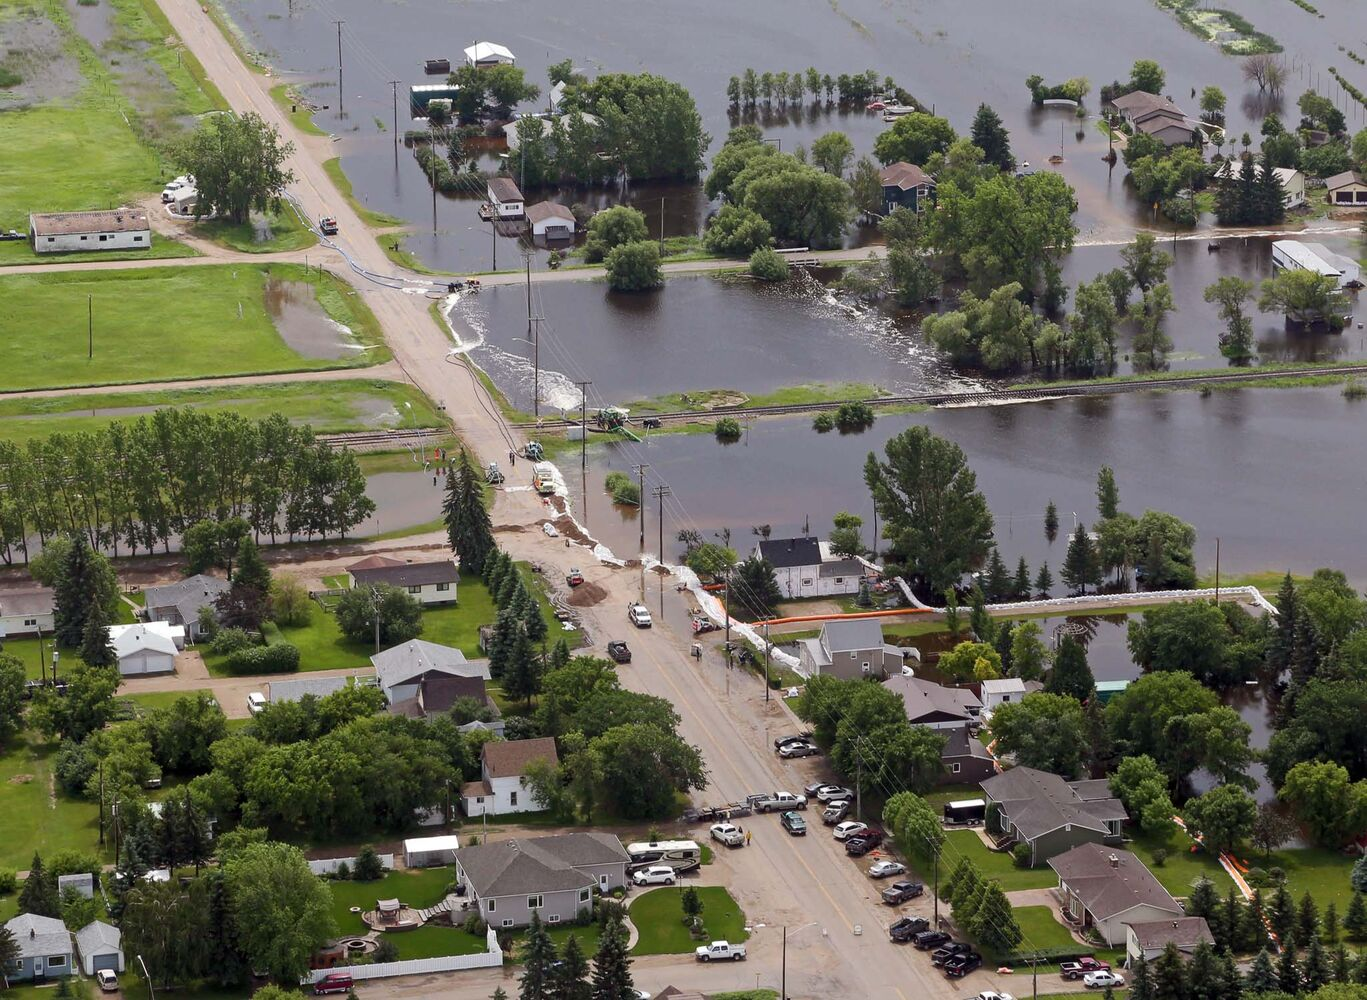 The town of Reston is seen Monday afternoon after heavy weekend rainfall left a swath of flood damage across southwestern Manitoba.